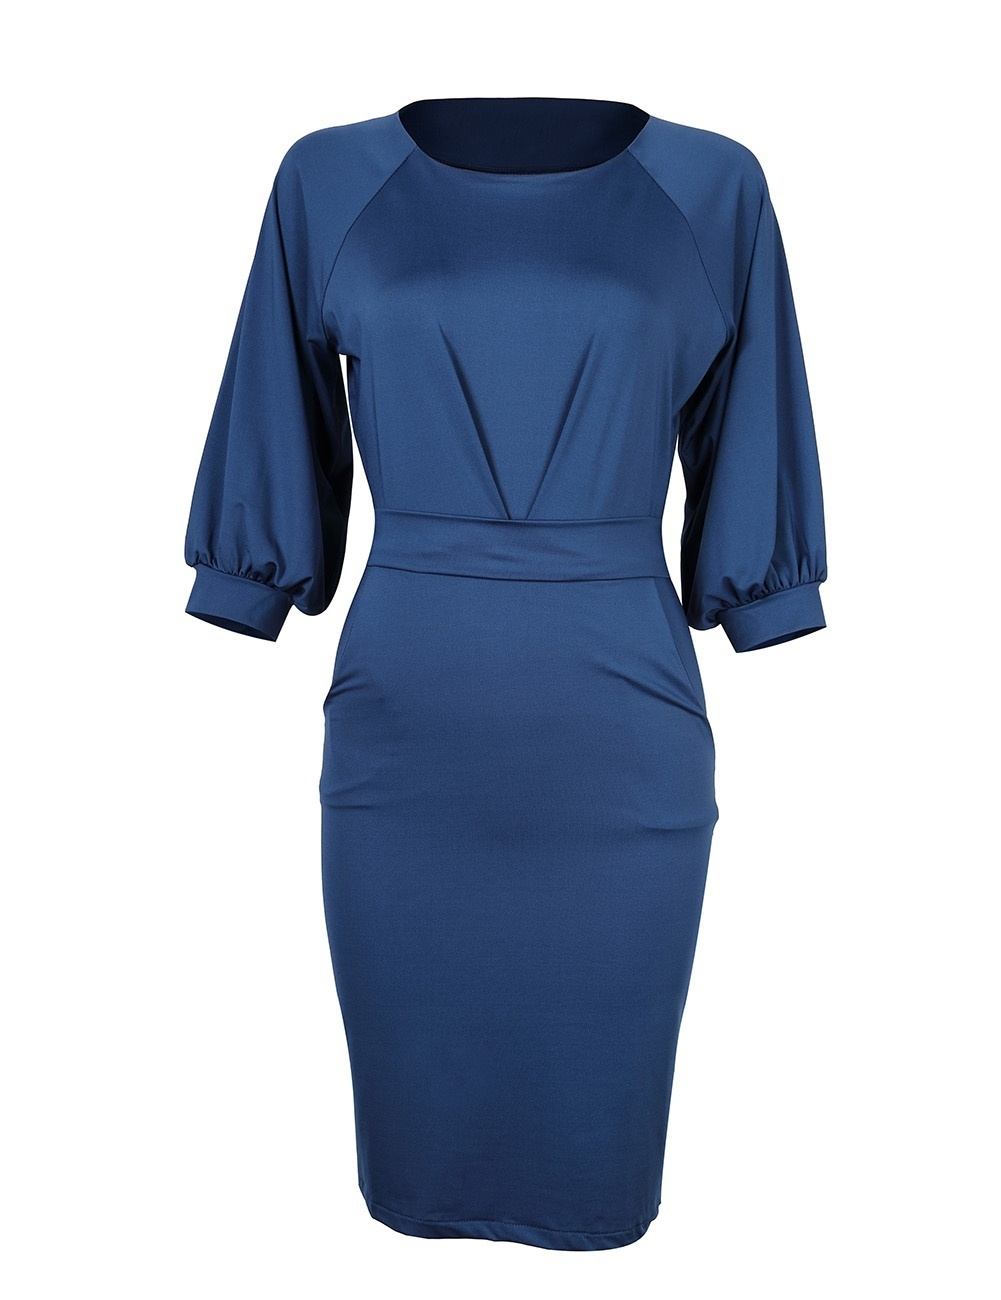 Women's Casual Solid Color Work Dress